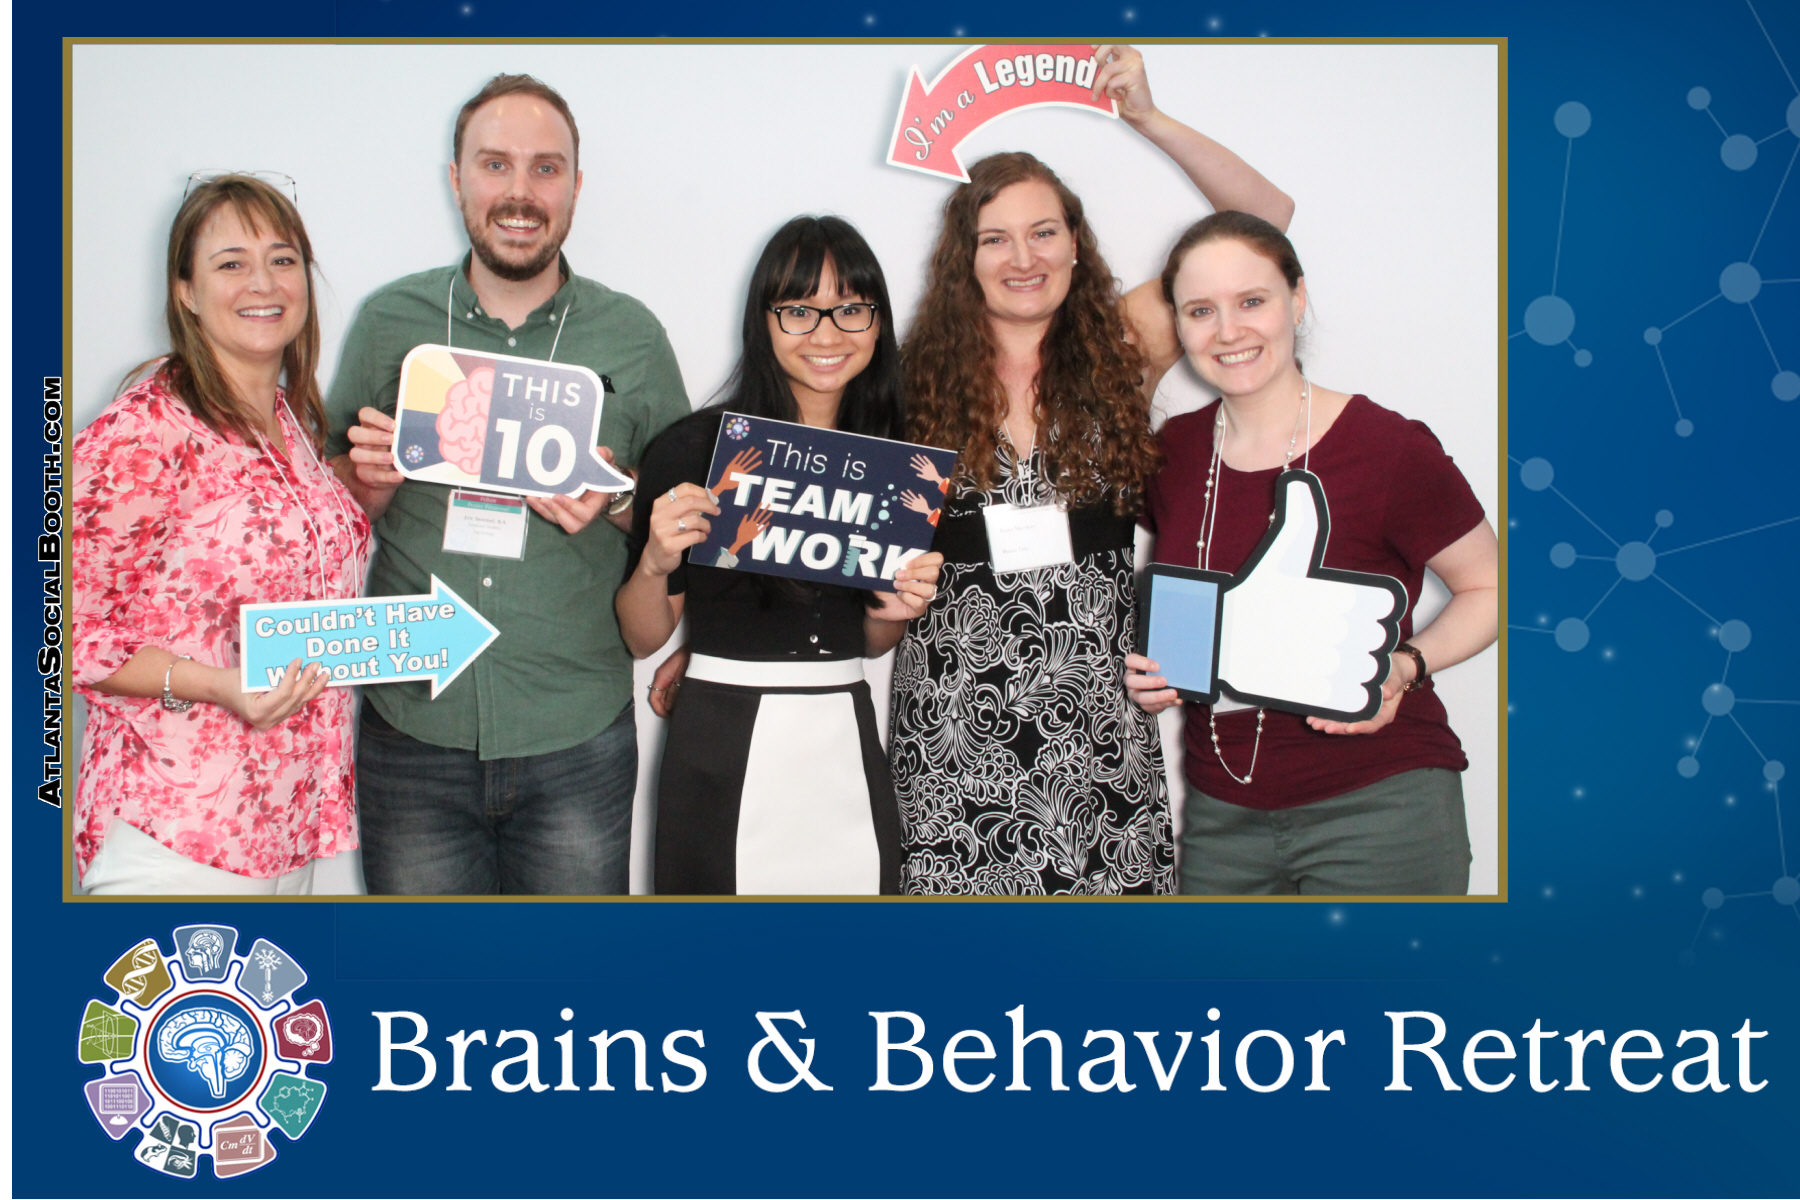 Brains and Behavior Retreat